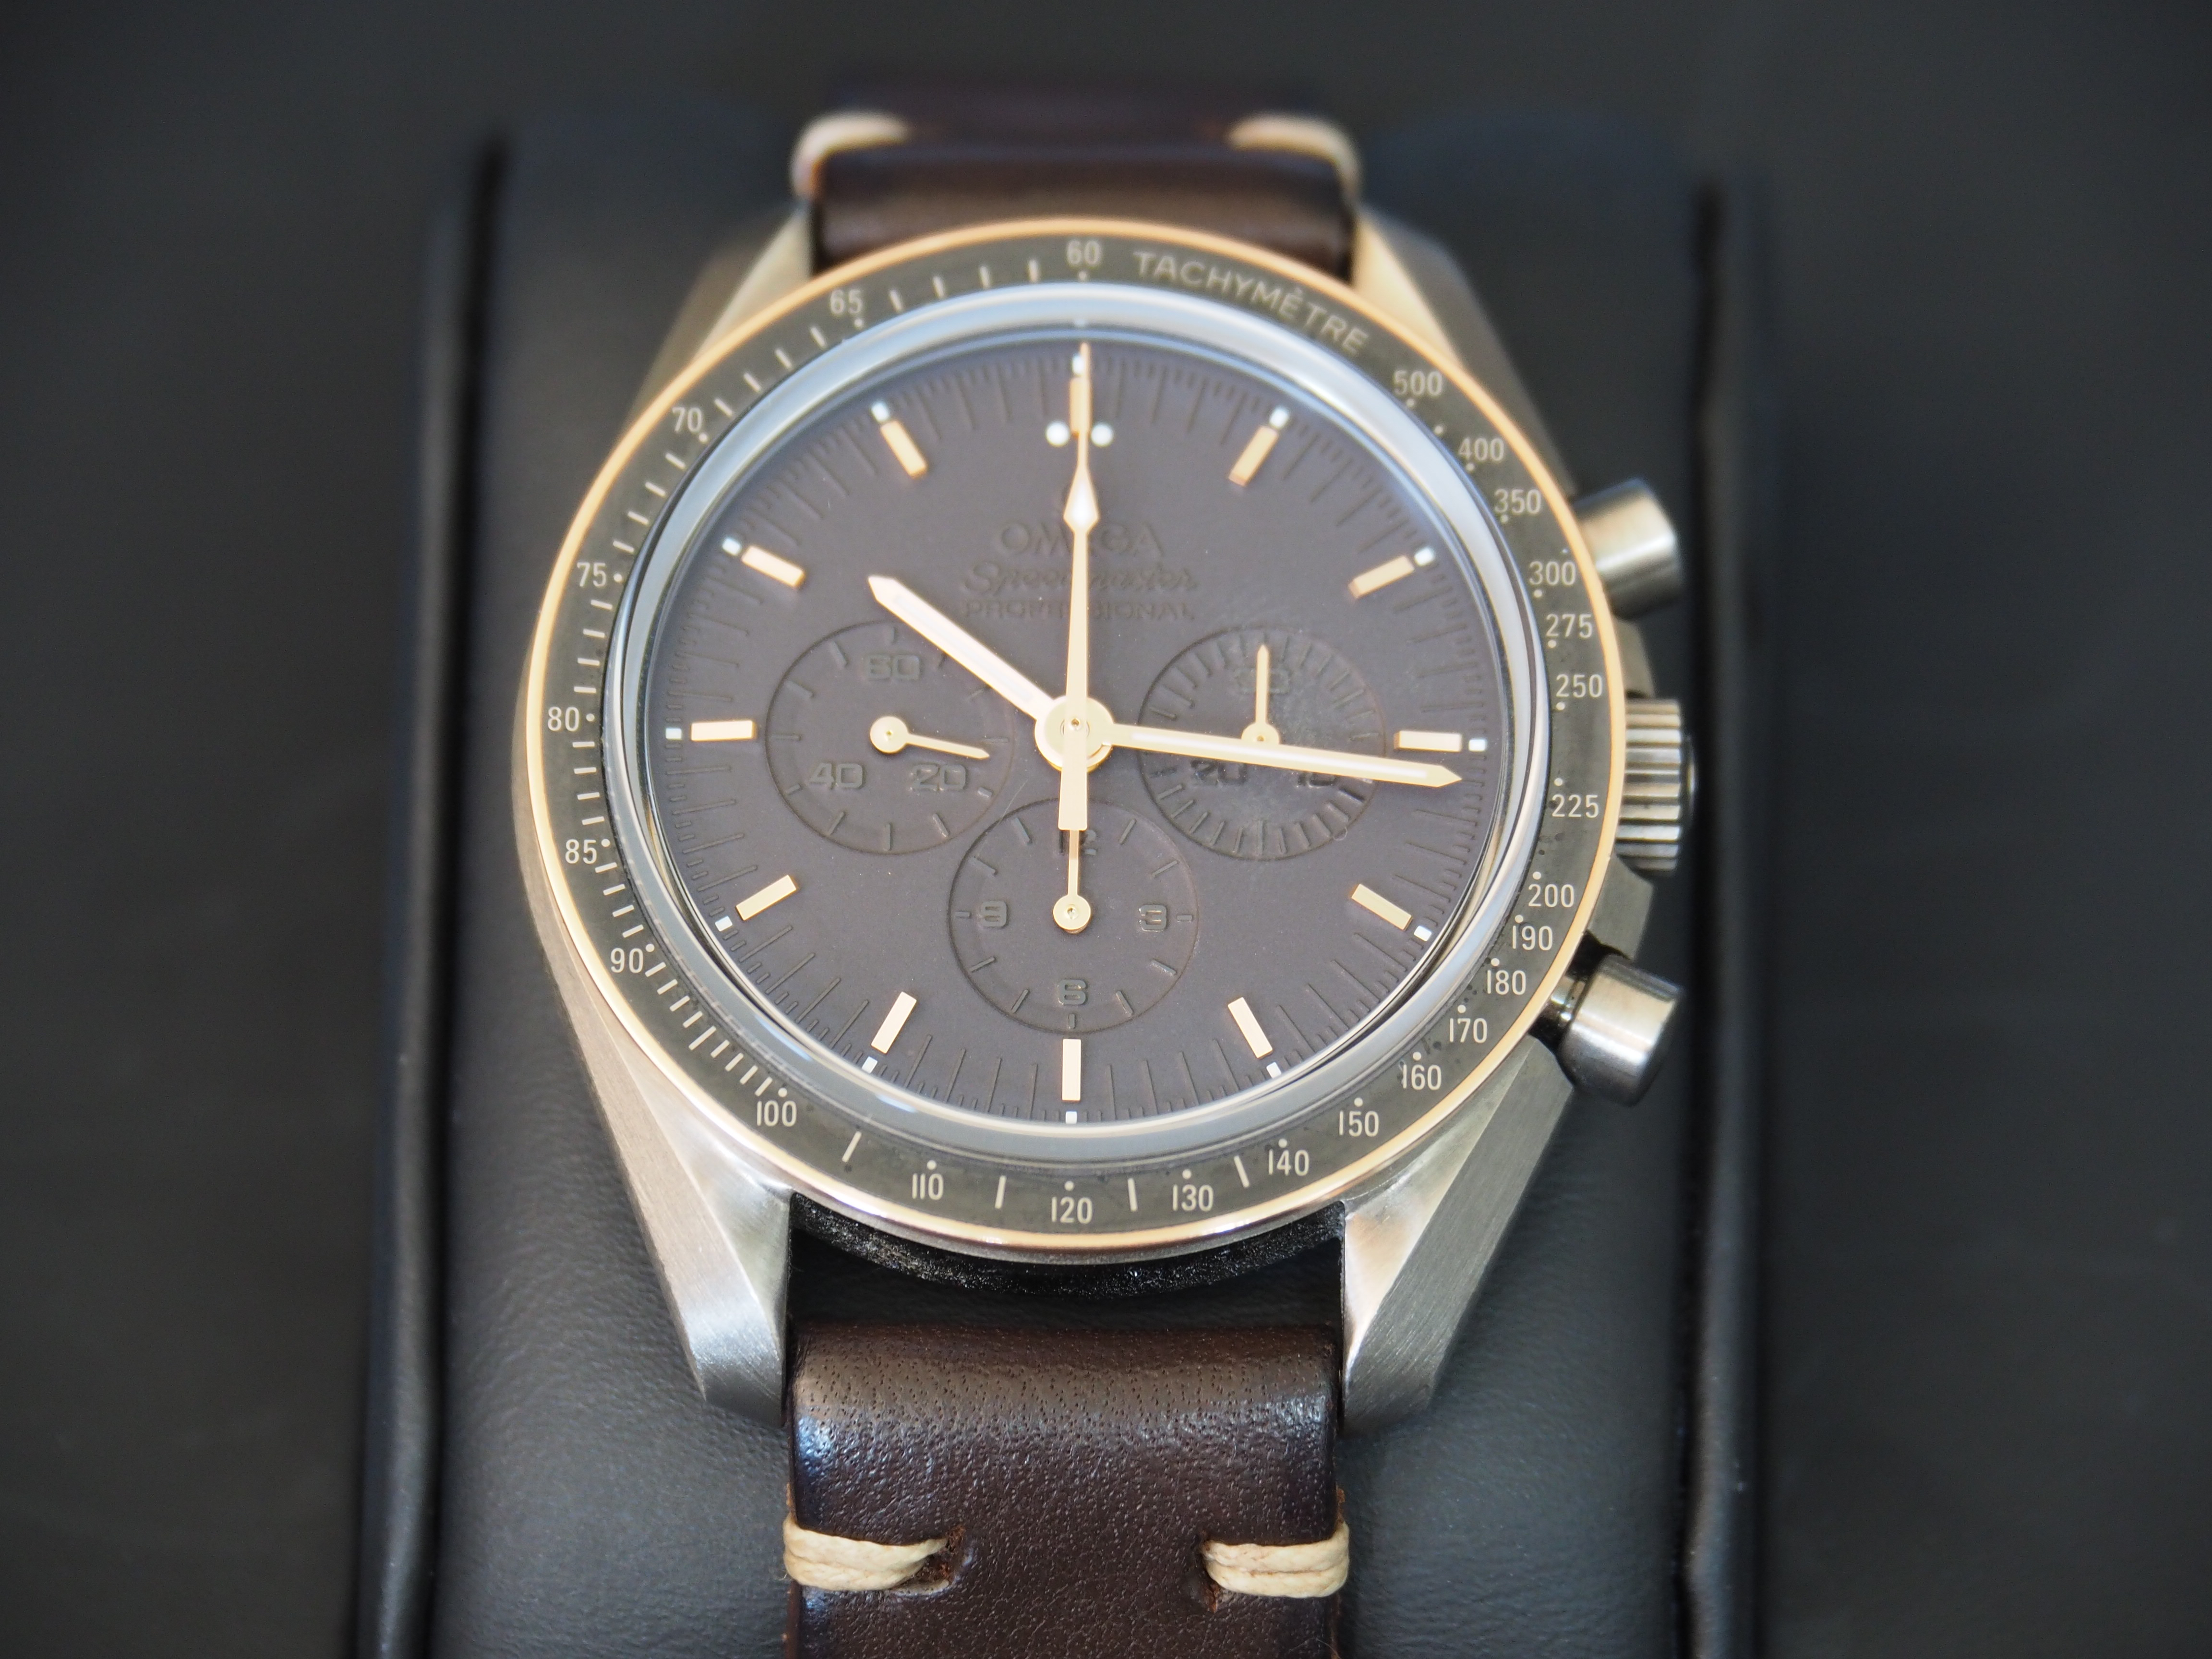 Omega Speedmaster Apollo 11 45th Anniversary Limited Edition watch